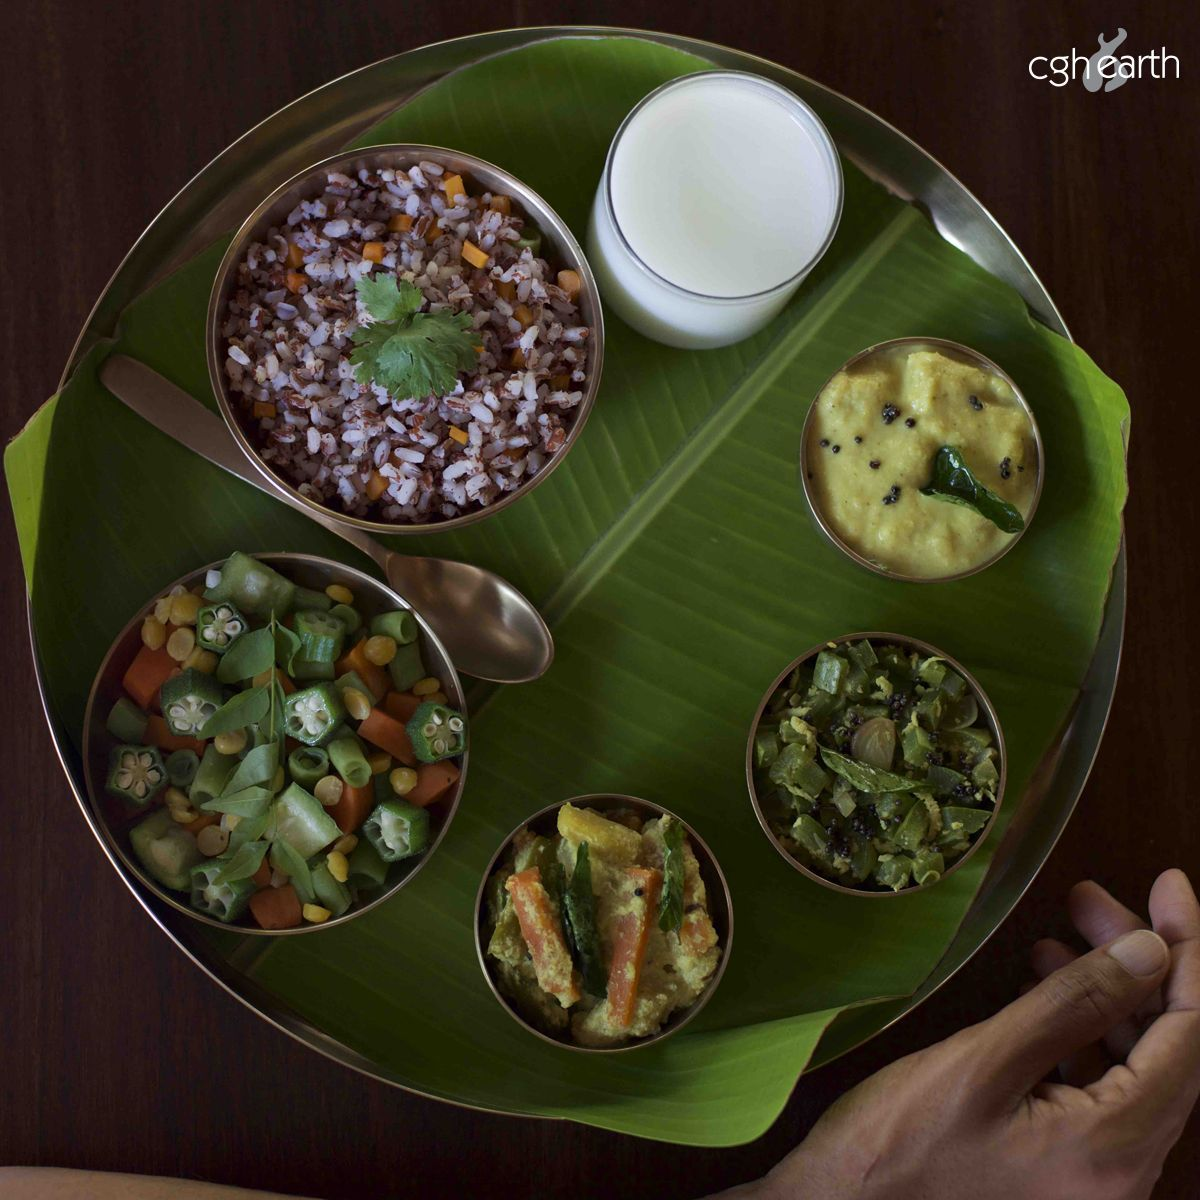 Cgh earth cghearth twitter indian cuisine pinterest earth ayurveda prescribes a sattvic diet to keep our bodies healthy and minds stress free at guests have organic food that is rich in prana forumfinder Gallery